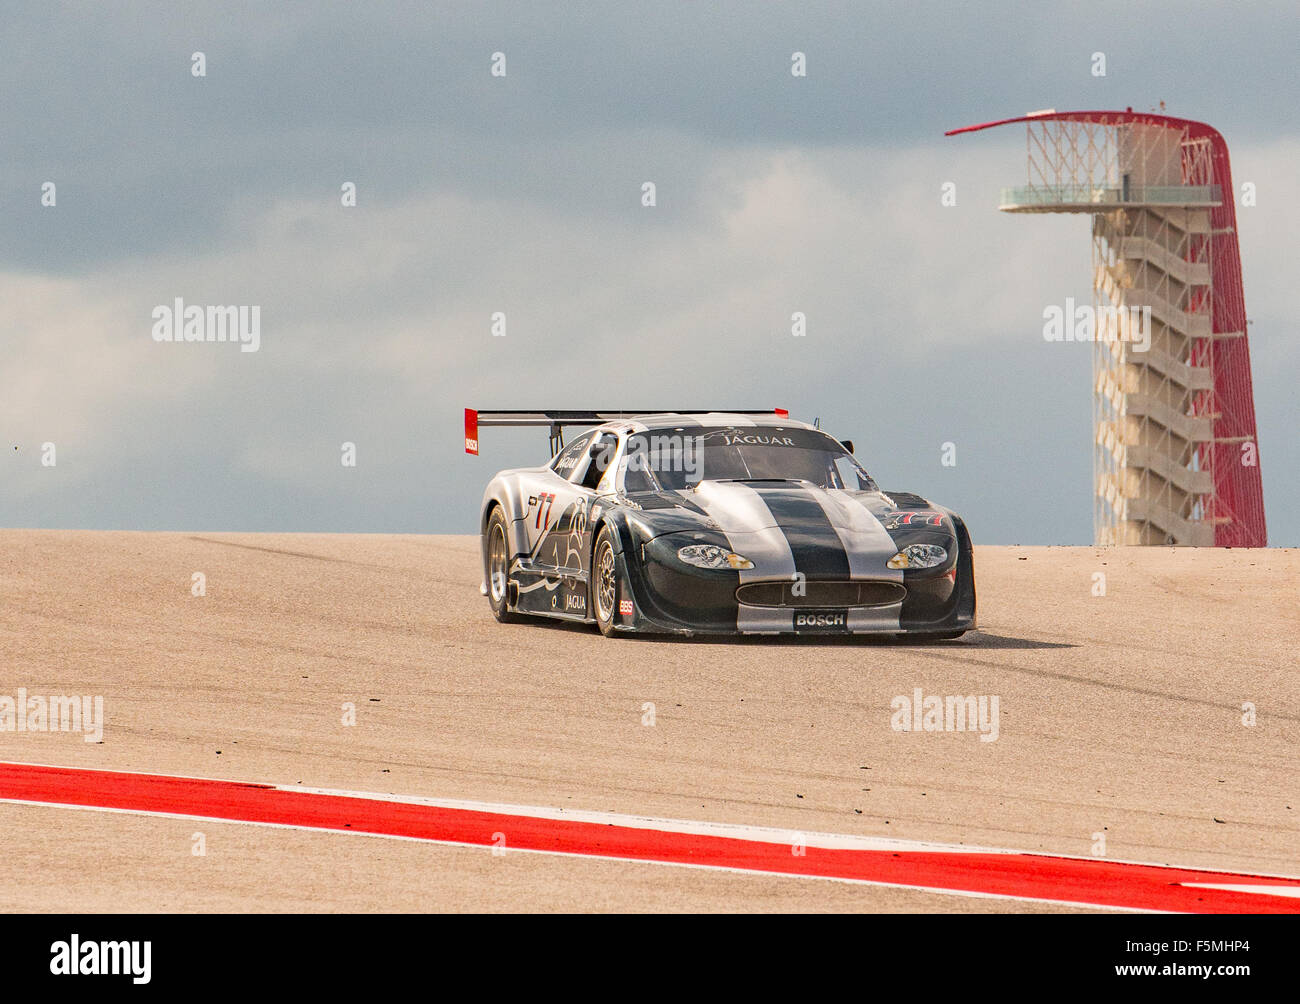 Sportscar Vintage National Championship Race At Circuit Of The Americas,  Austin, TX, 2015